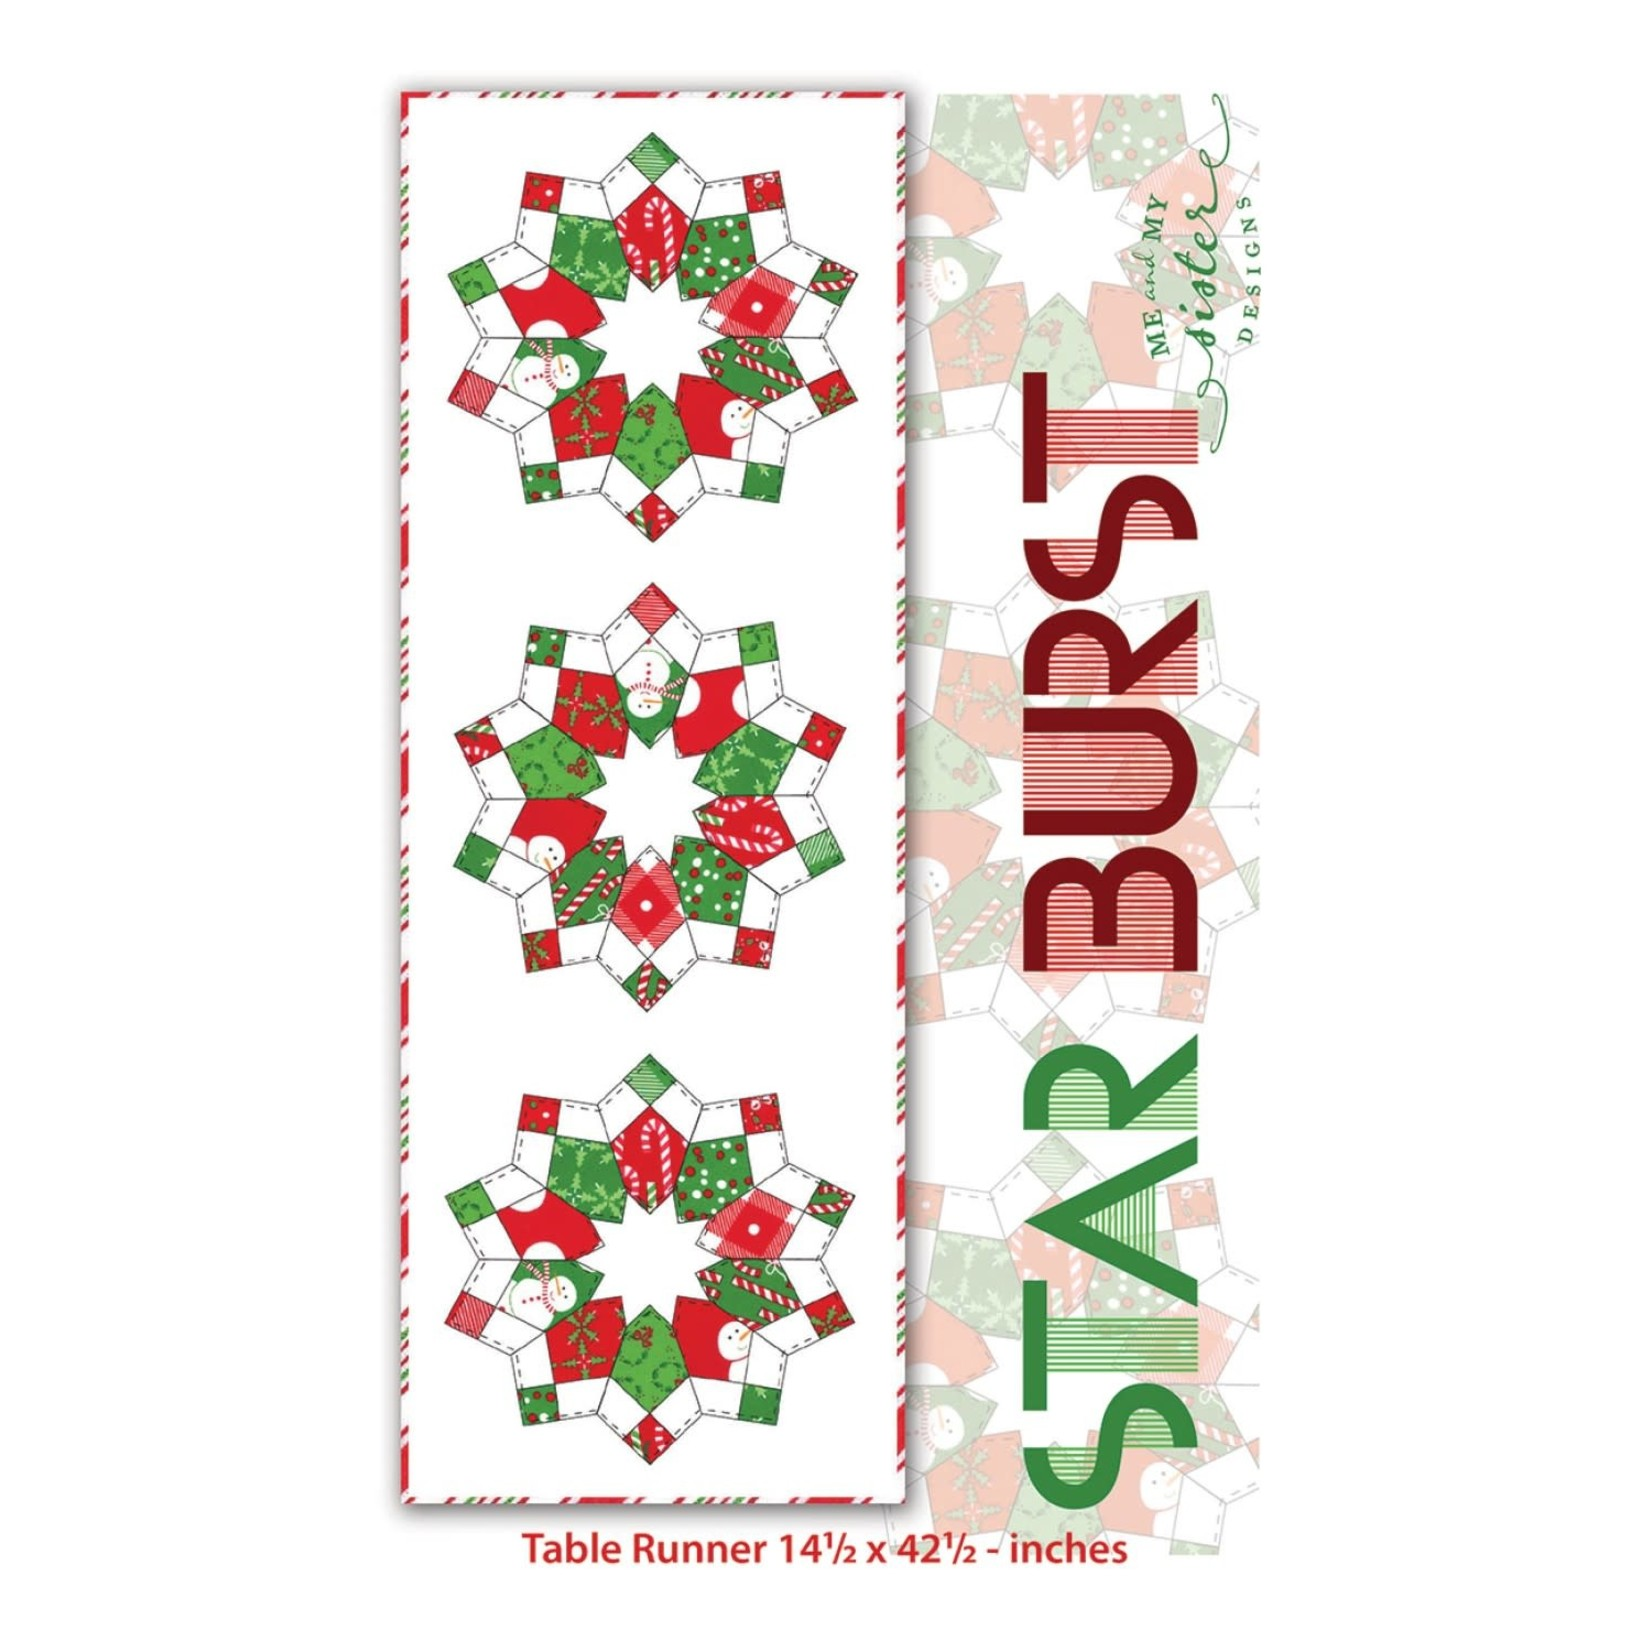 Me and My Sister Designs Starburst Table Runner with 4 patch template